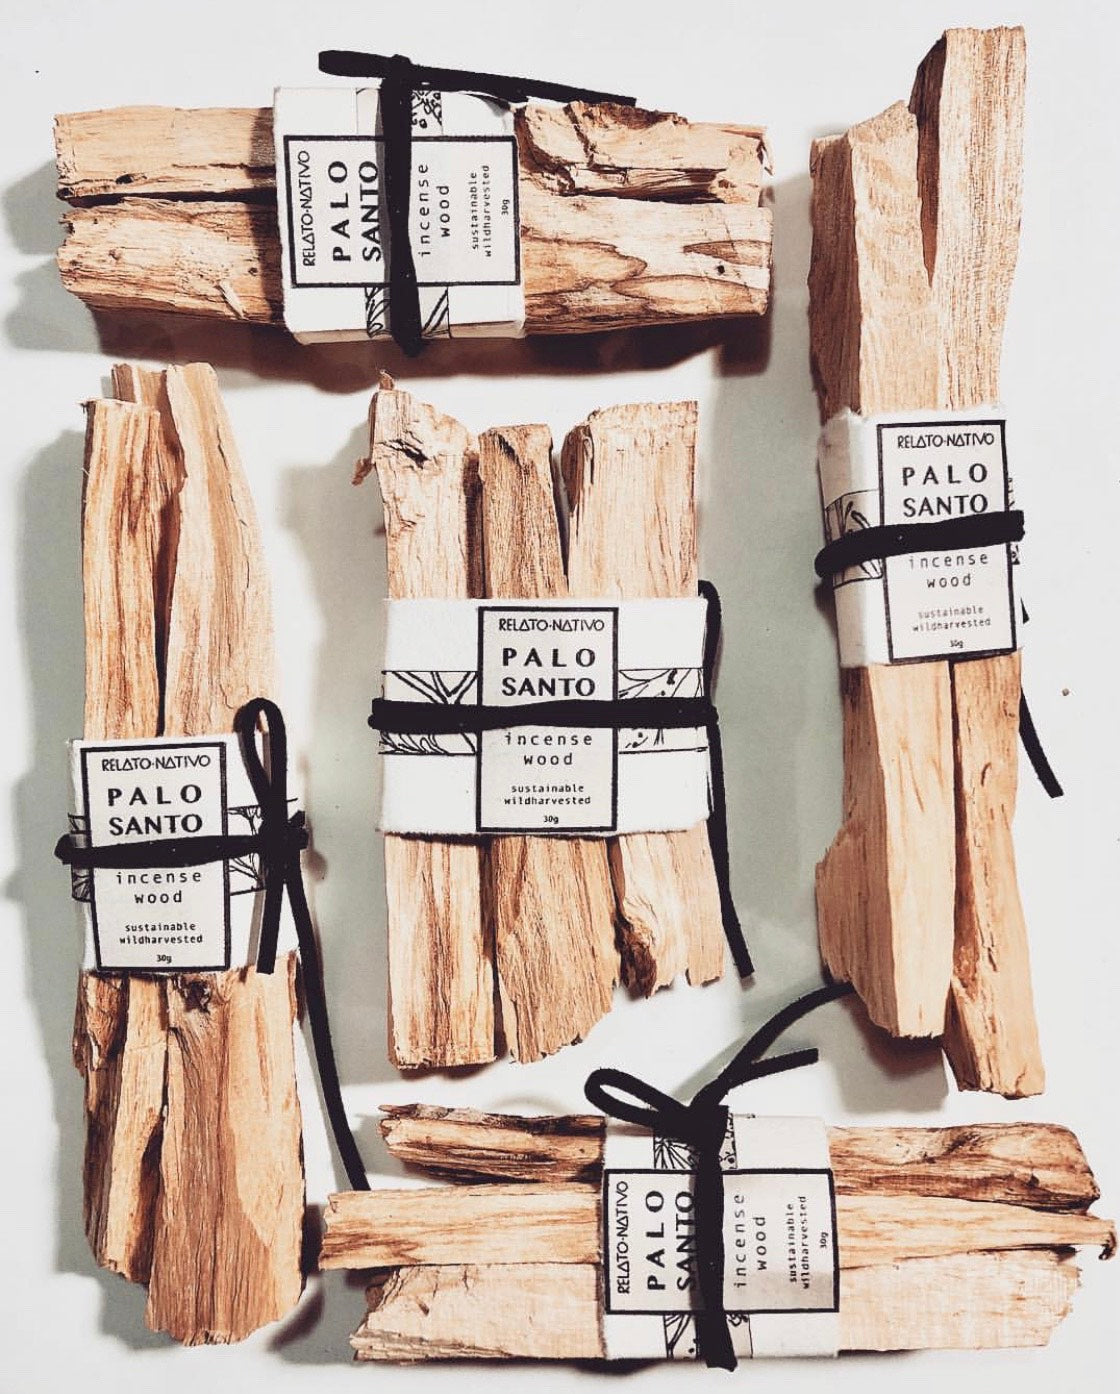 PALO SANTO SUSTAINABLE INCENSE WOOD